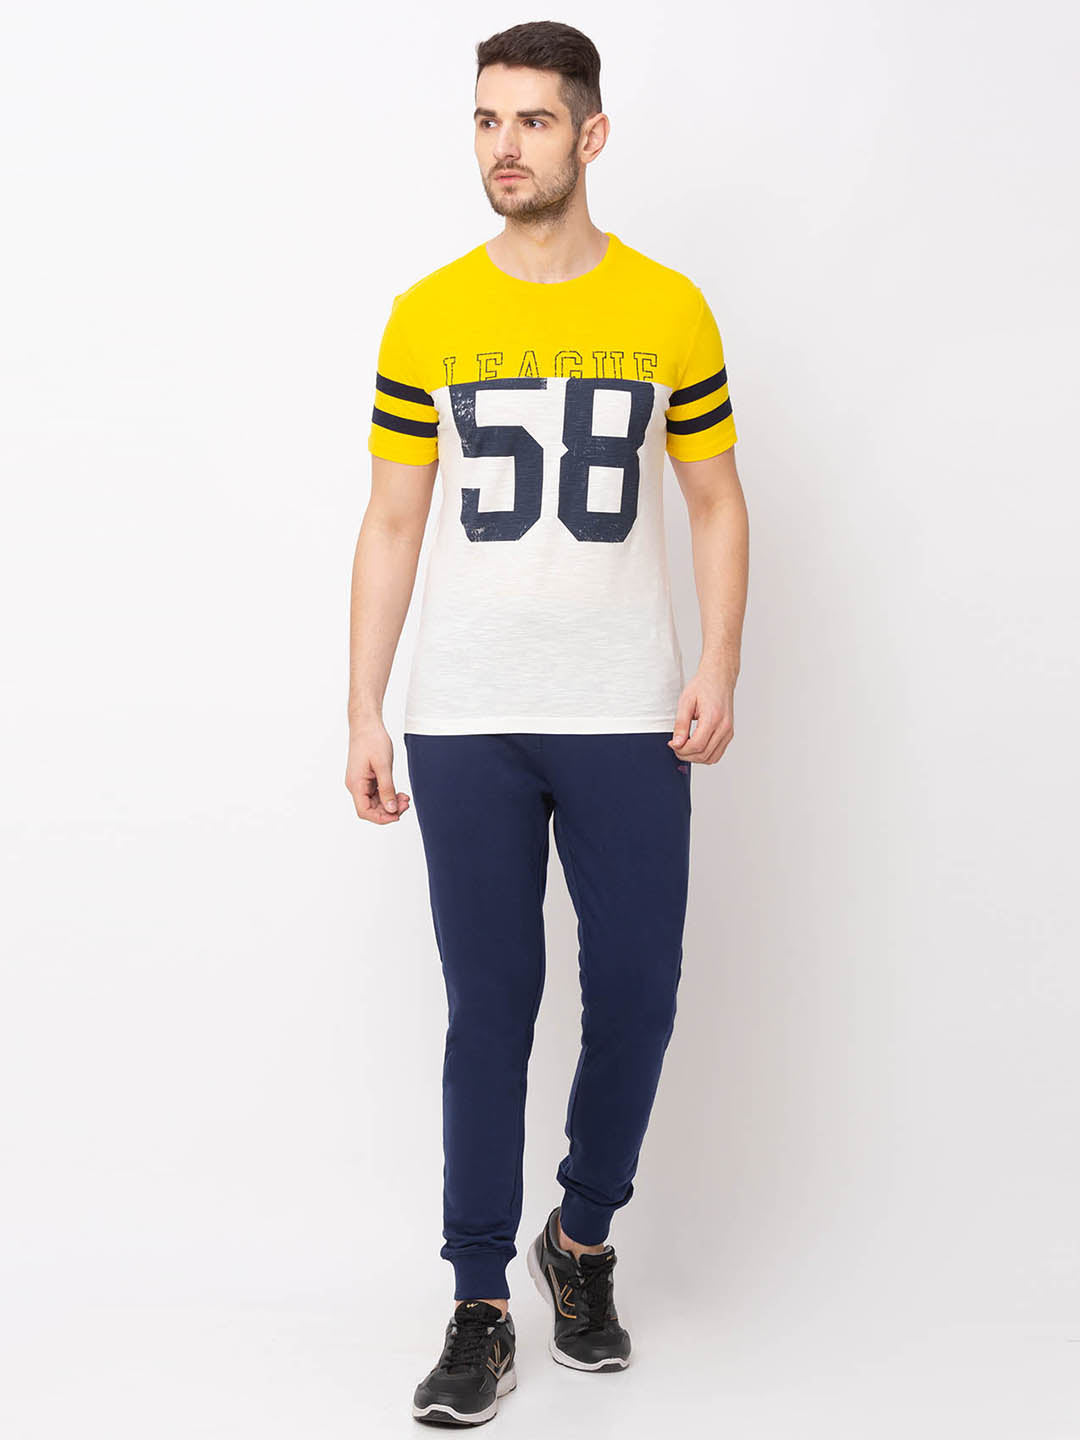 Globus Yellow Printed T-Shirt-5